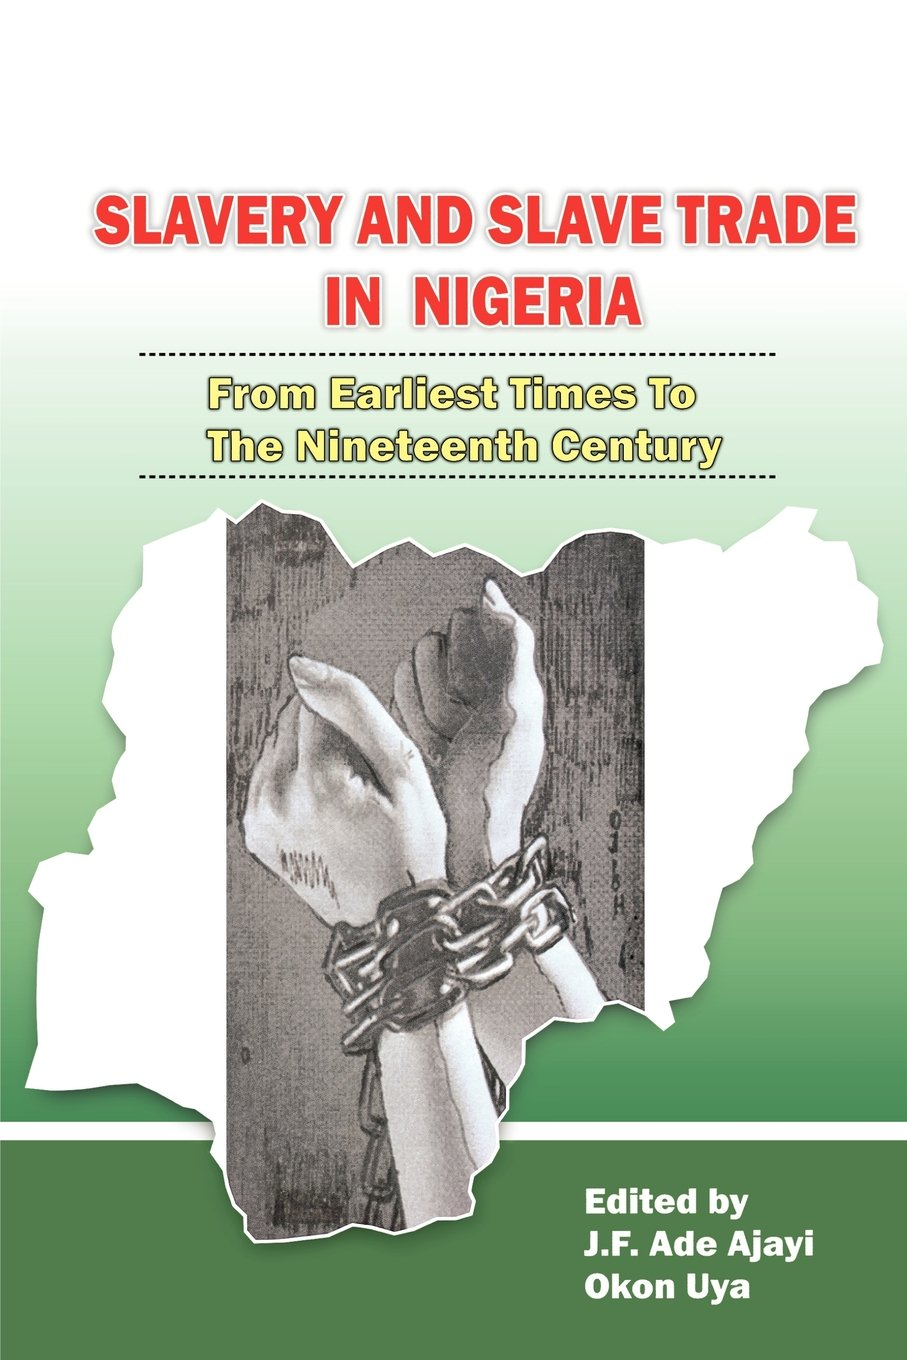 Download Slavery and Slave Trade in Nigeria. From Earliest Times to The Nineteenth Century pdf